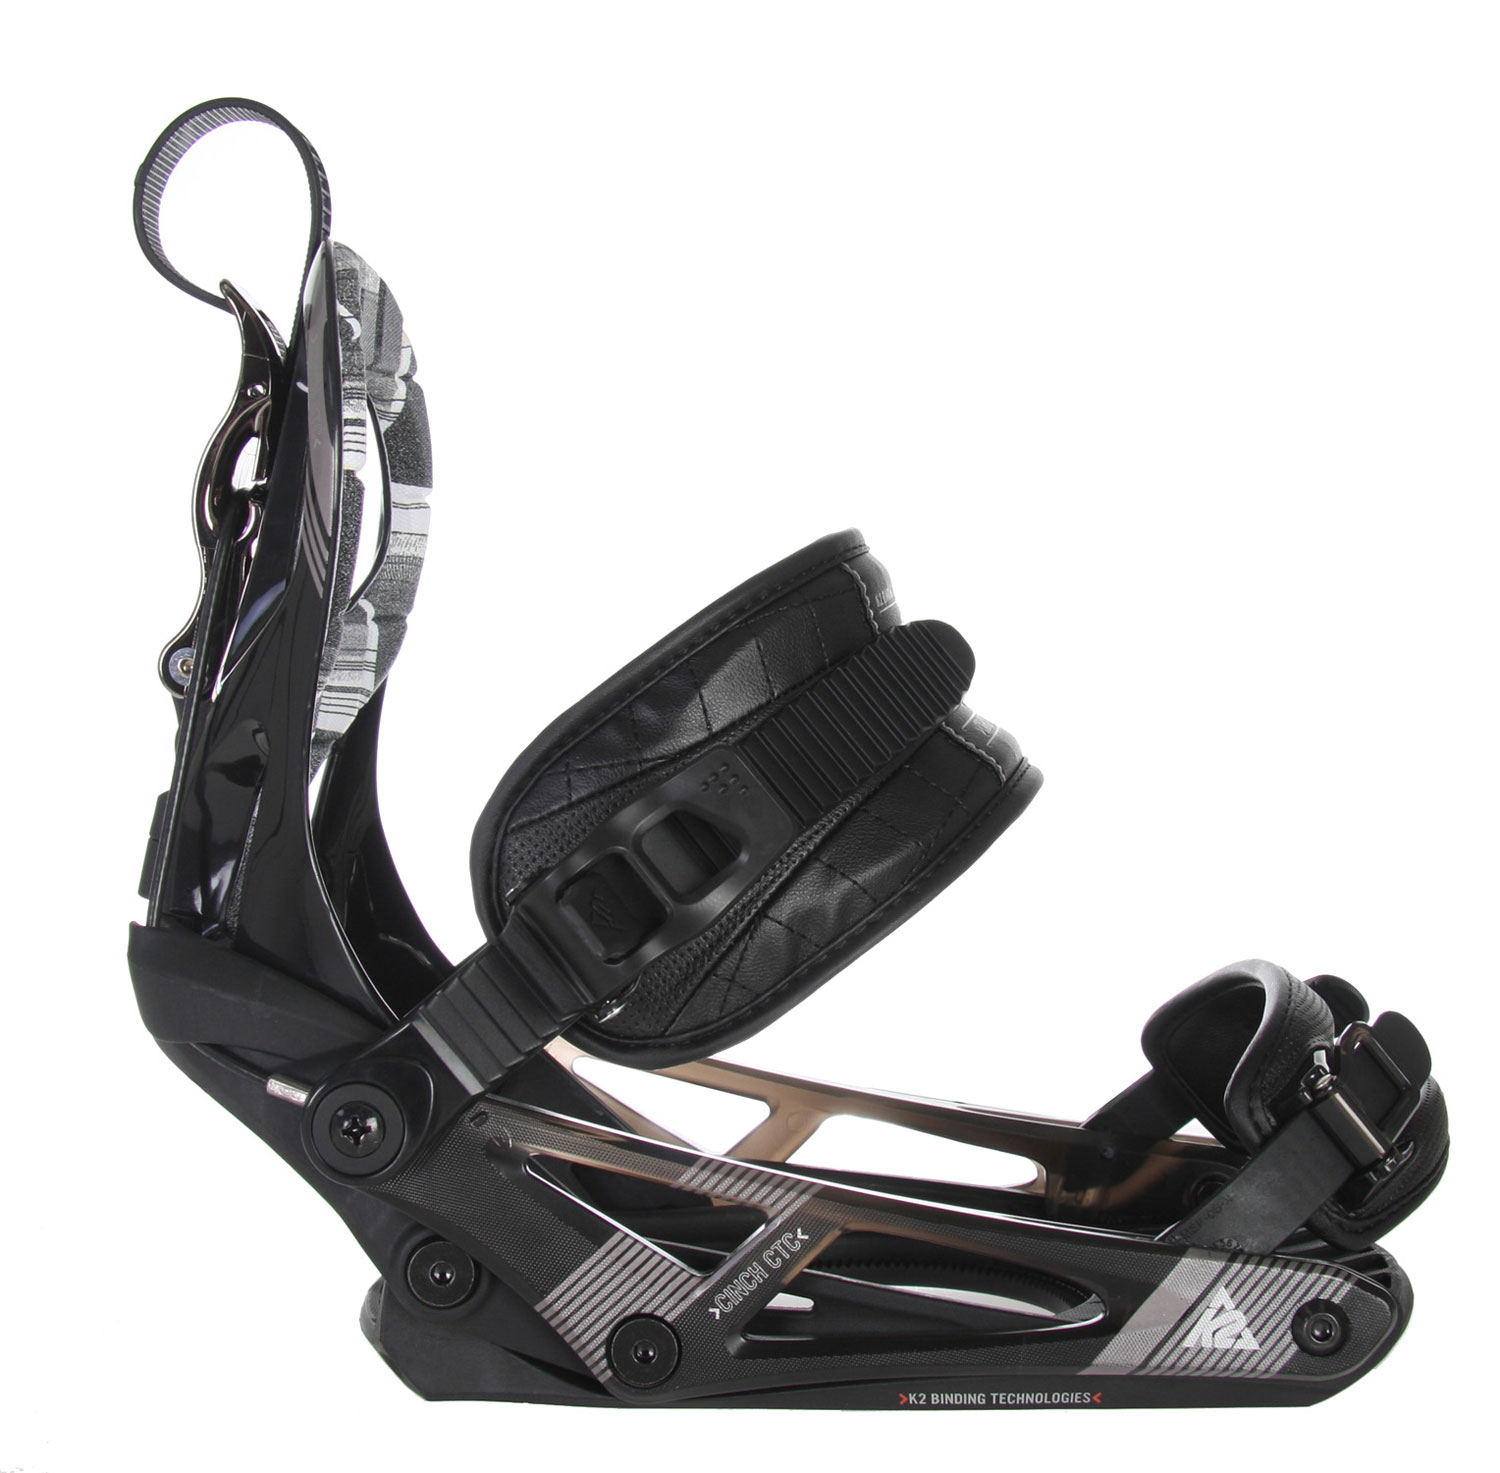 Snowboard Strap binding performance made easy, the 2010-11 K2 Cinch CTC snowboard binding delivers convenience and comfort at a price that won't break the bank. Tool-Less adjustments of both the Caddy Ankle Strap and the Cored Universal Toe Strap provides everything you need to get that perfect boot to binding fit. A NEW Airframe Highback completes this great easy-to-use binding.Key Features of the K2 Cinch CTC Snowboard Bindings: Chassis: C1 Chassis Footbed Features: EVA Shockpads Tool-Less Adjust Power Ramp Air Frame Highback Caddy Ankle Strap Cam-lock Centering New! Cinch Toe Strap Aluminum EZ Feed Speed Ratchets Multi-Compatible Discs - $109.95